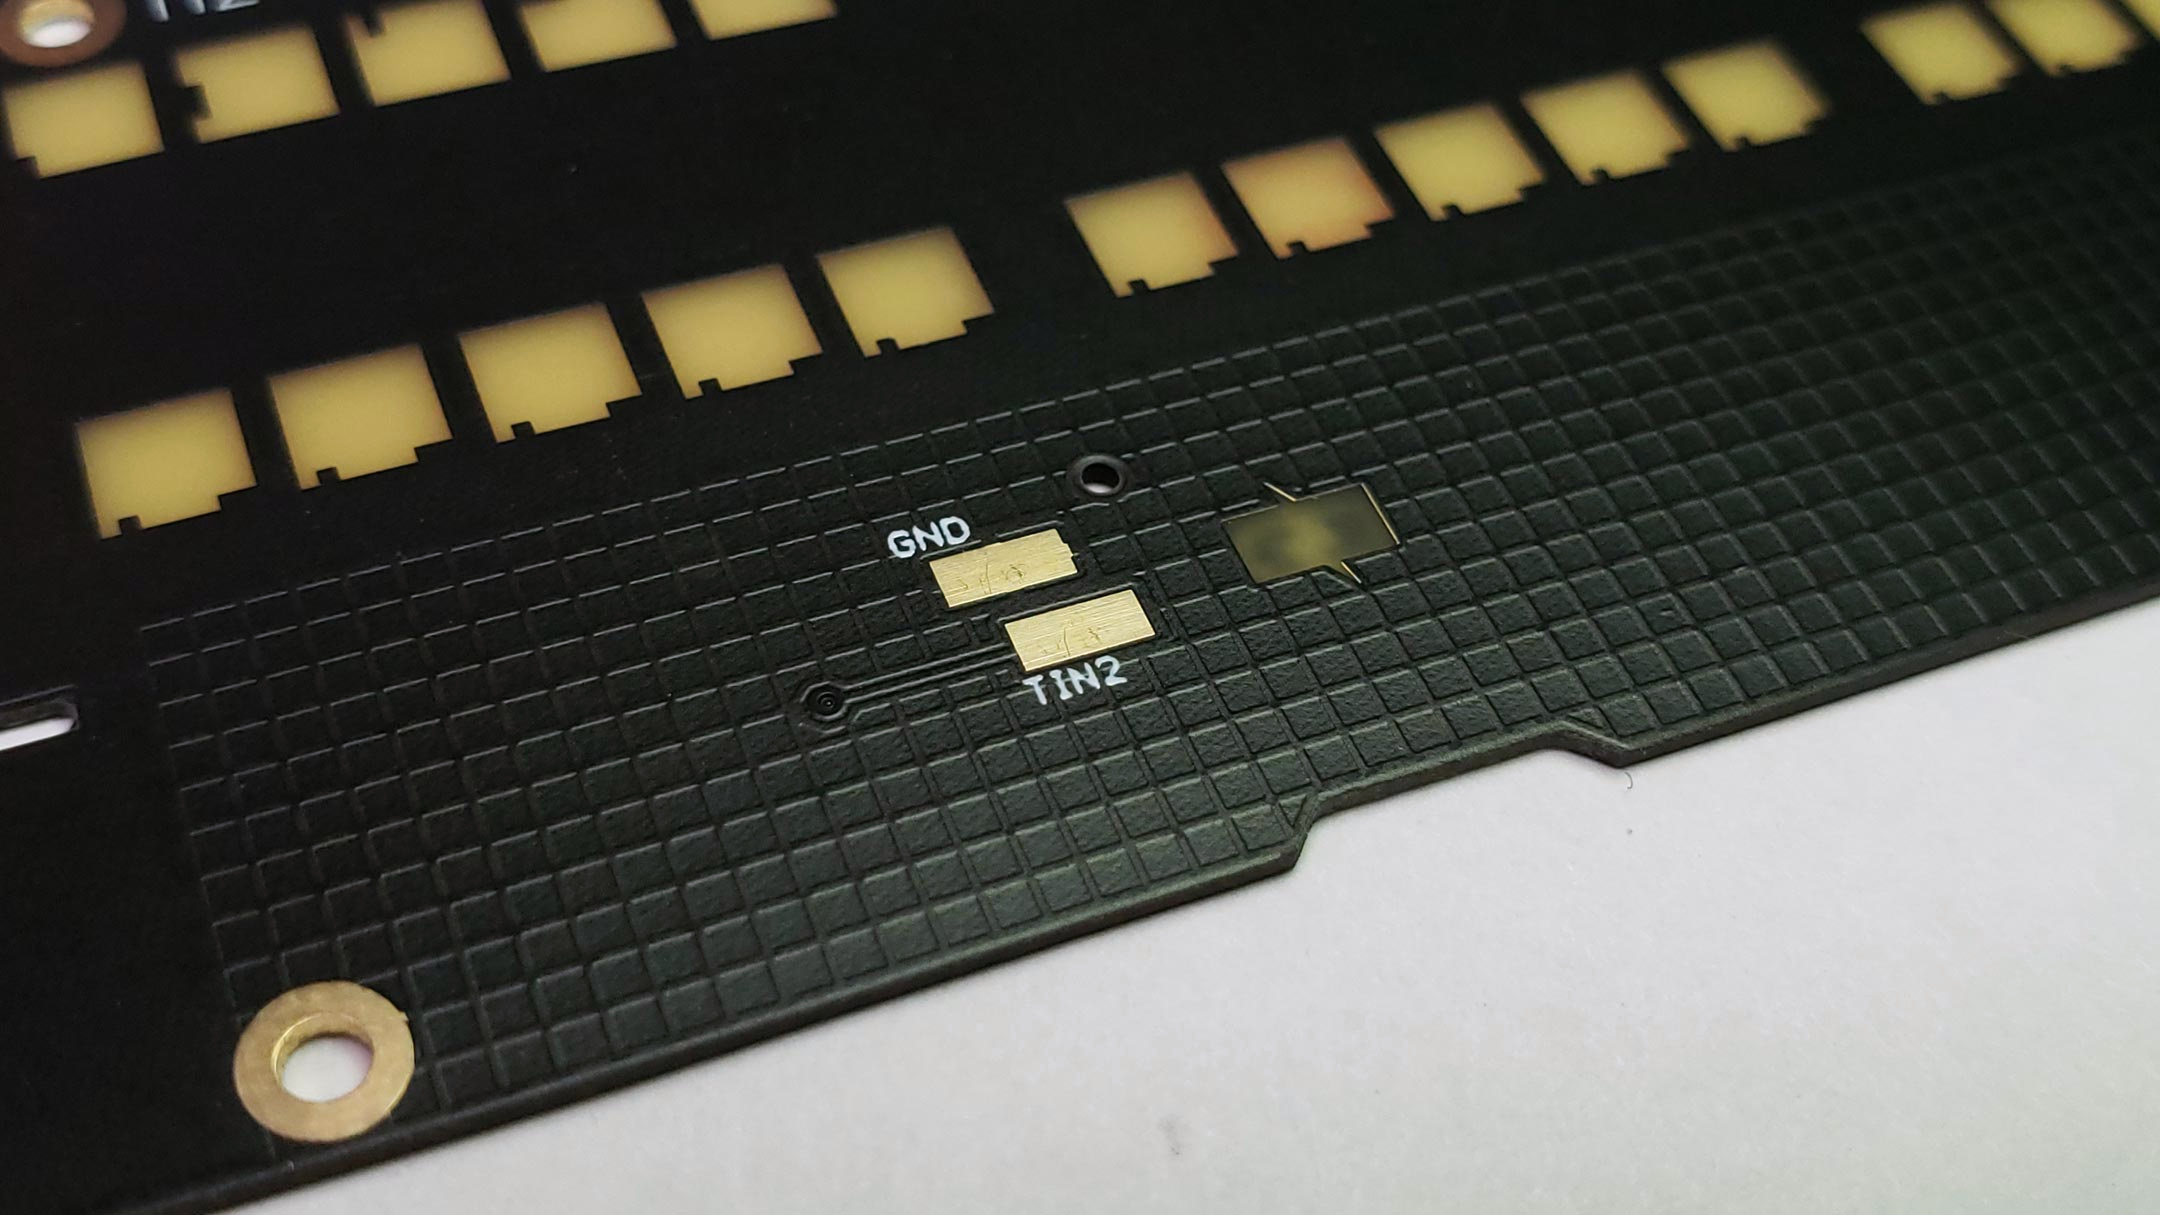 Pads for Spring contacts on Top Board